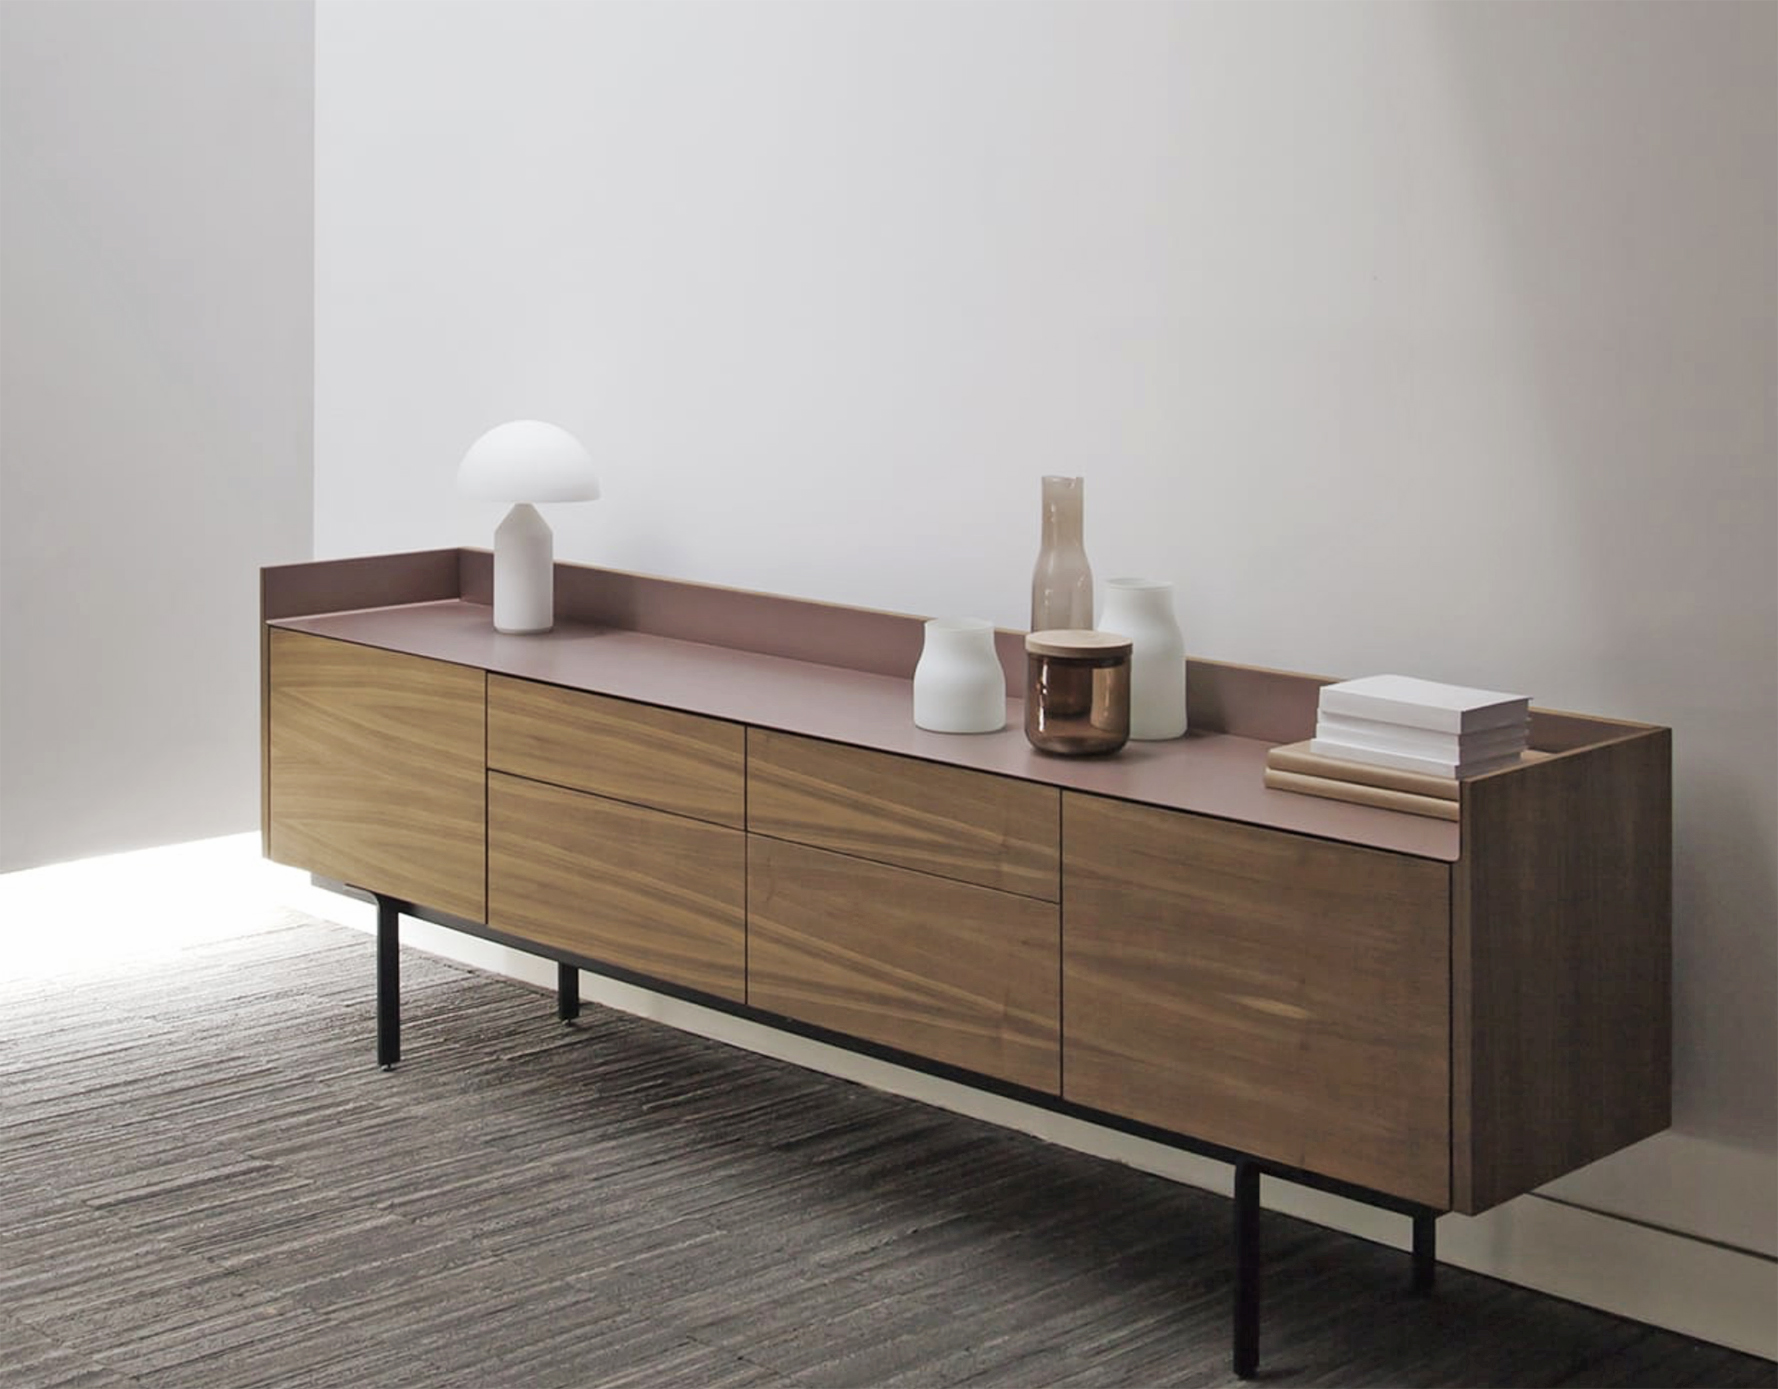 Stockholm sideboard, wood with aluminium top, by Mario Ruiz for Spanish brand Punt